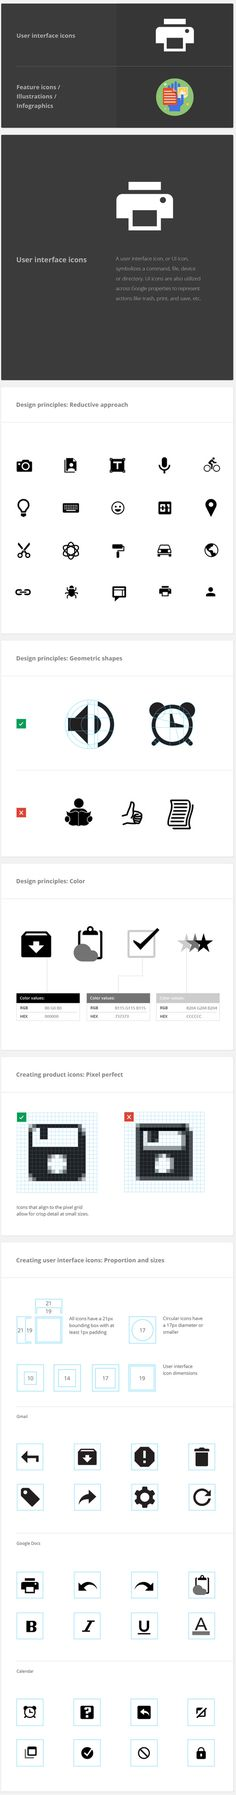 Google Visual Assets Guidelines Part 2 on Behance #google